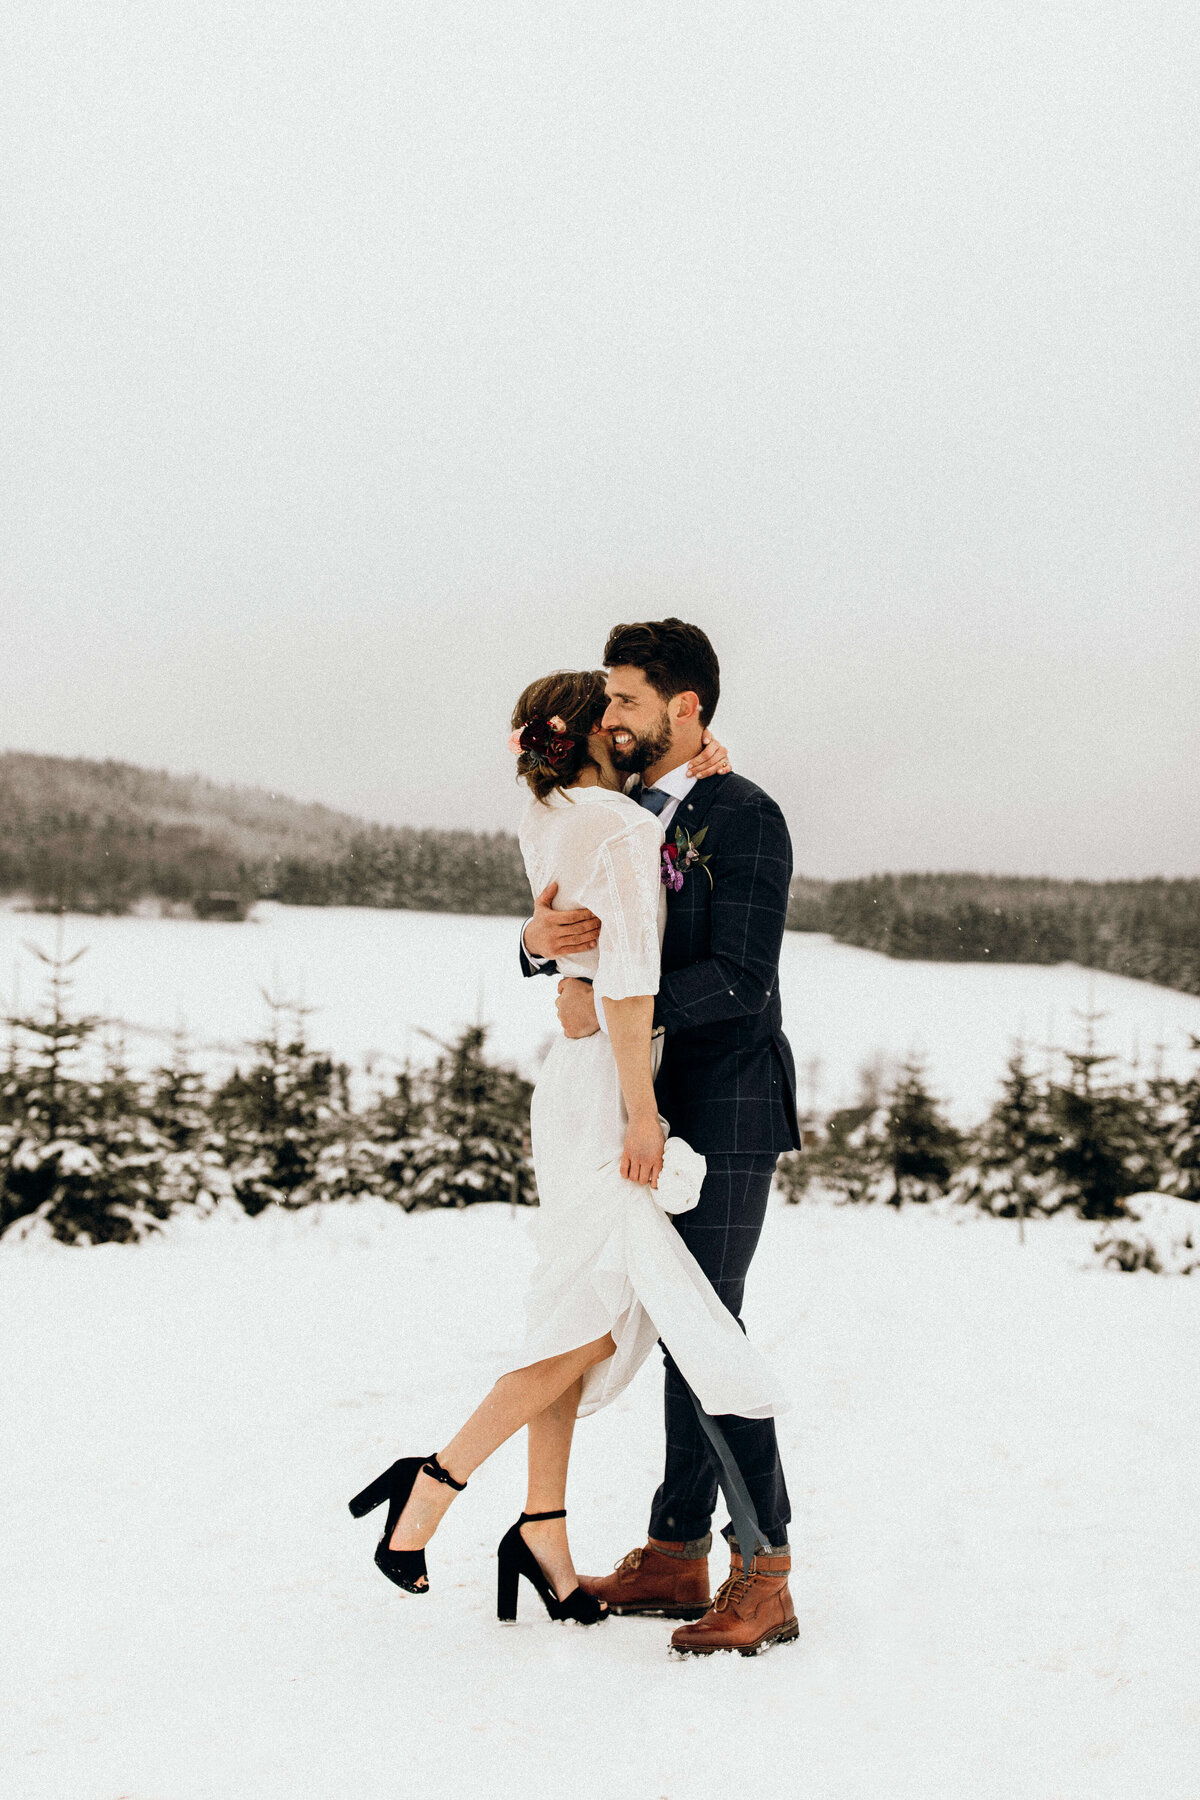 Styled Shoot - Winter Wonderland - Duitsland - 2019 3022